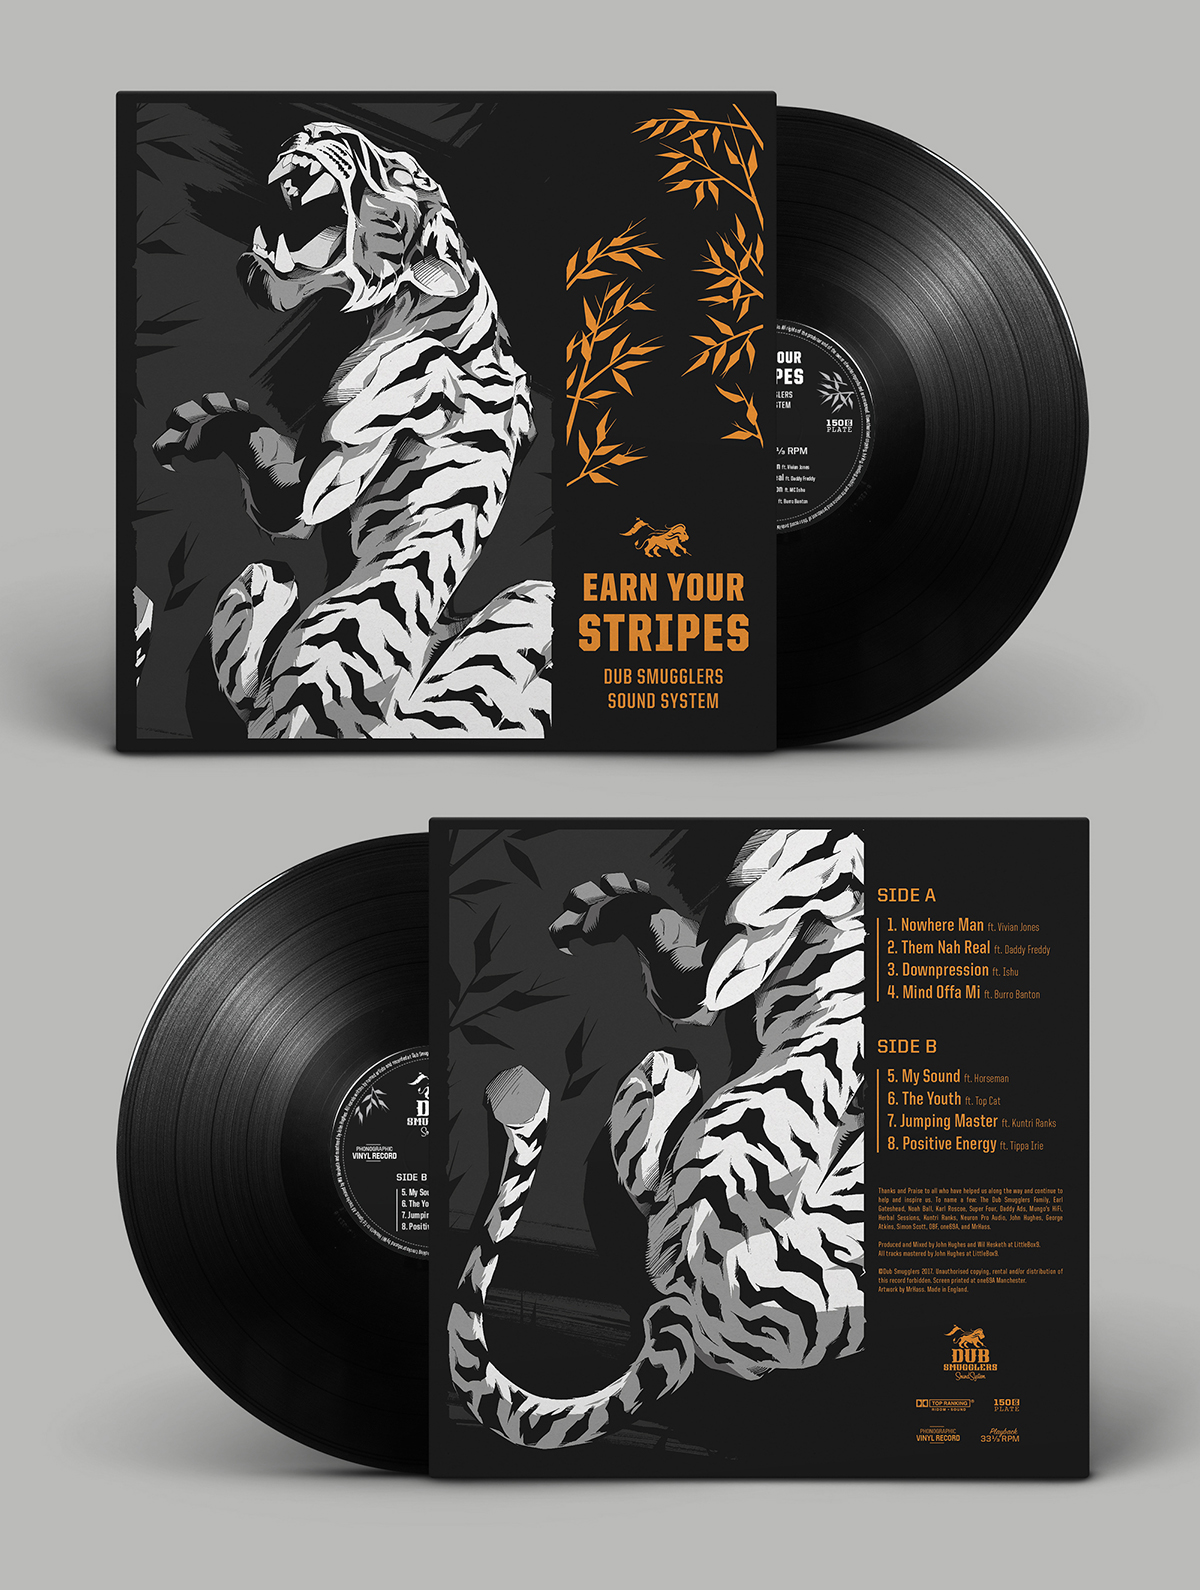 Record sleeve front and back for the 'Earn Your Stripes' LP.